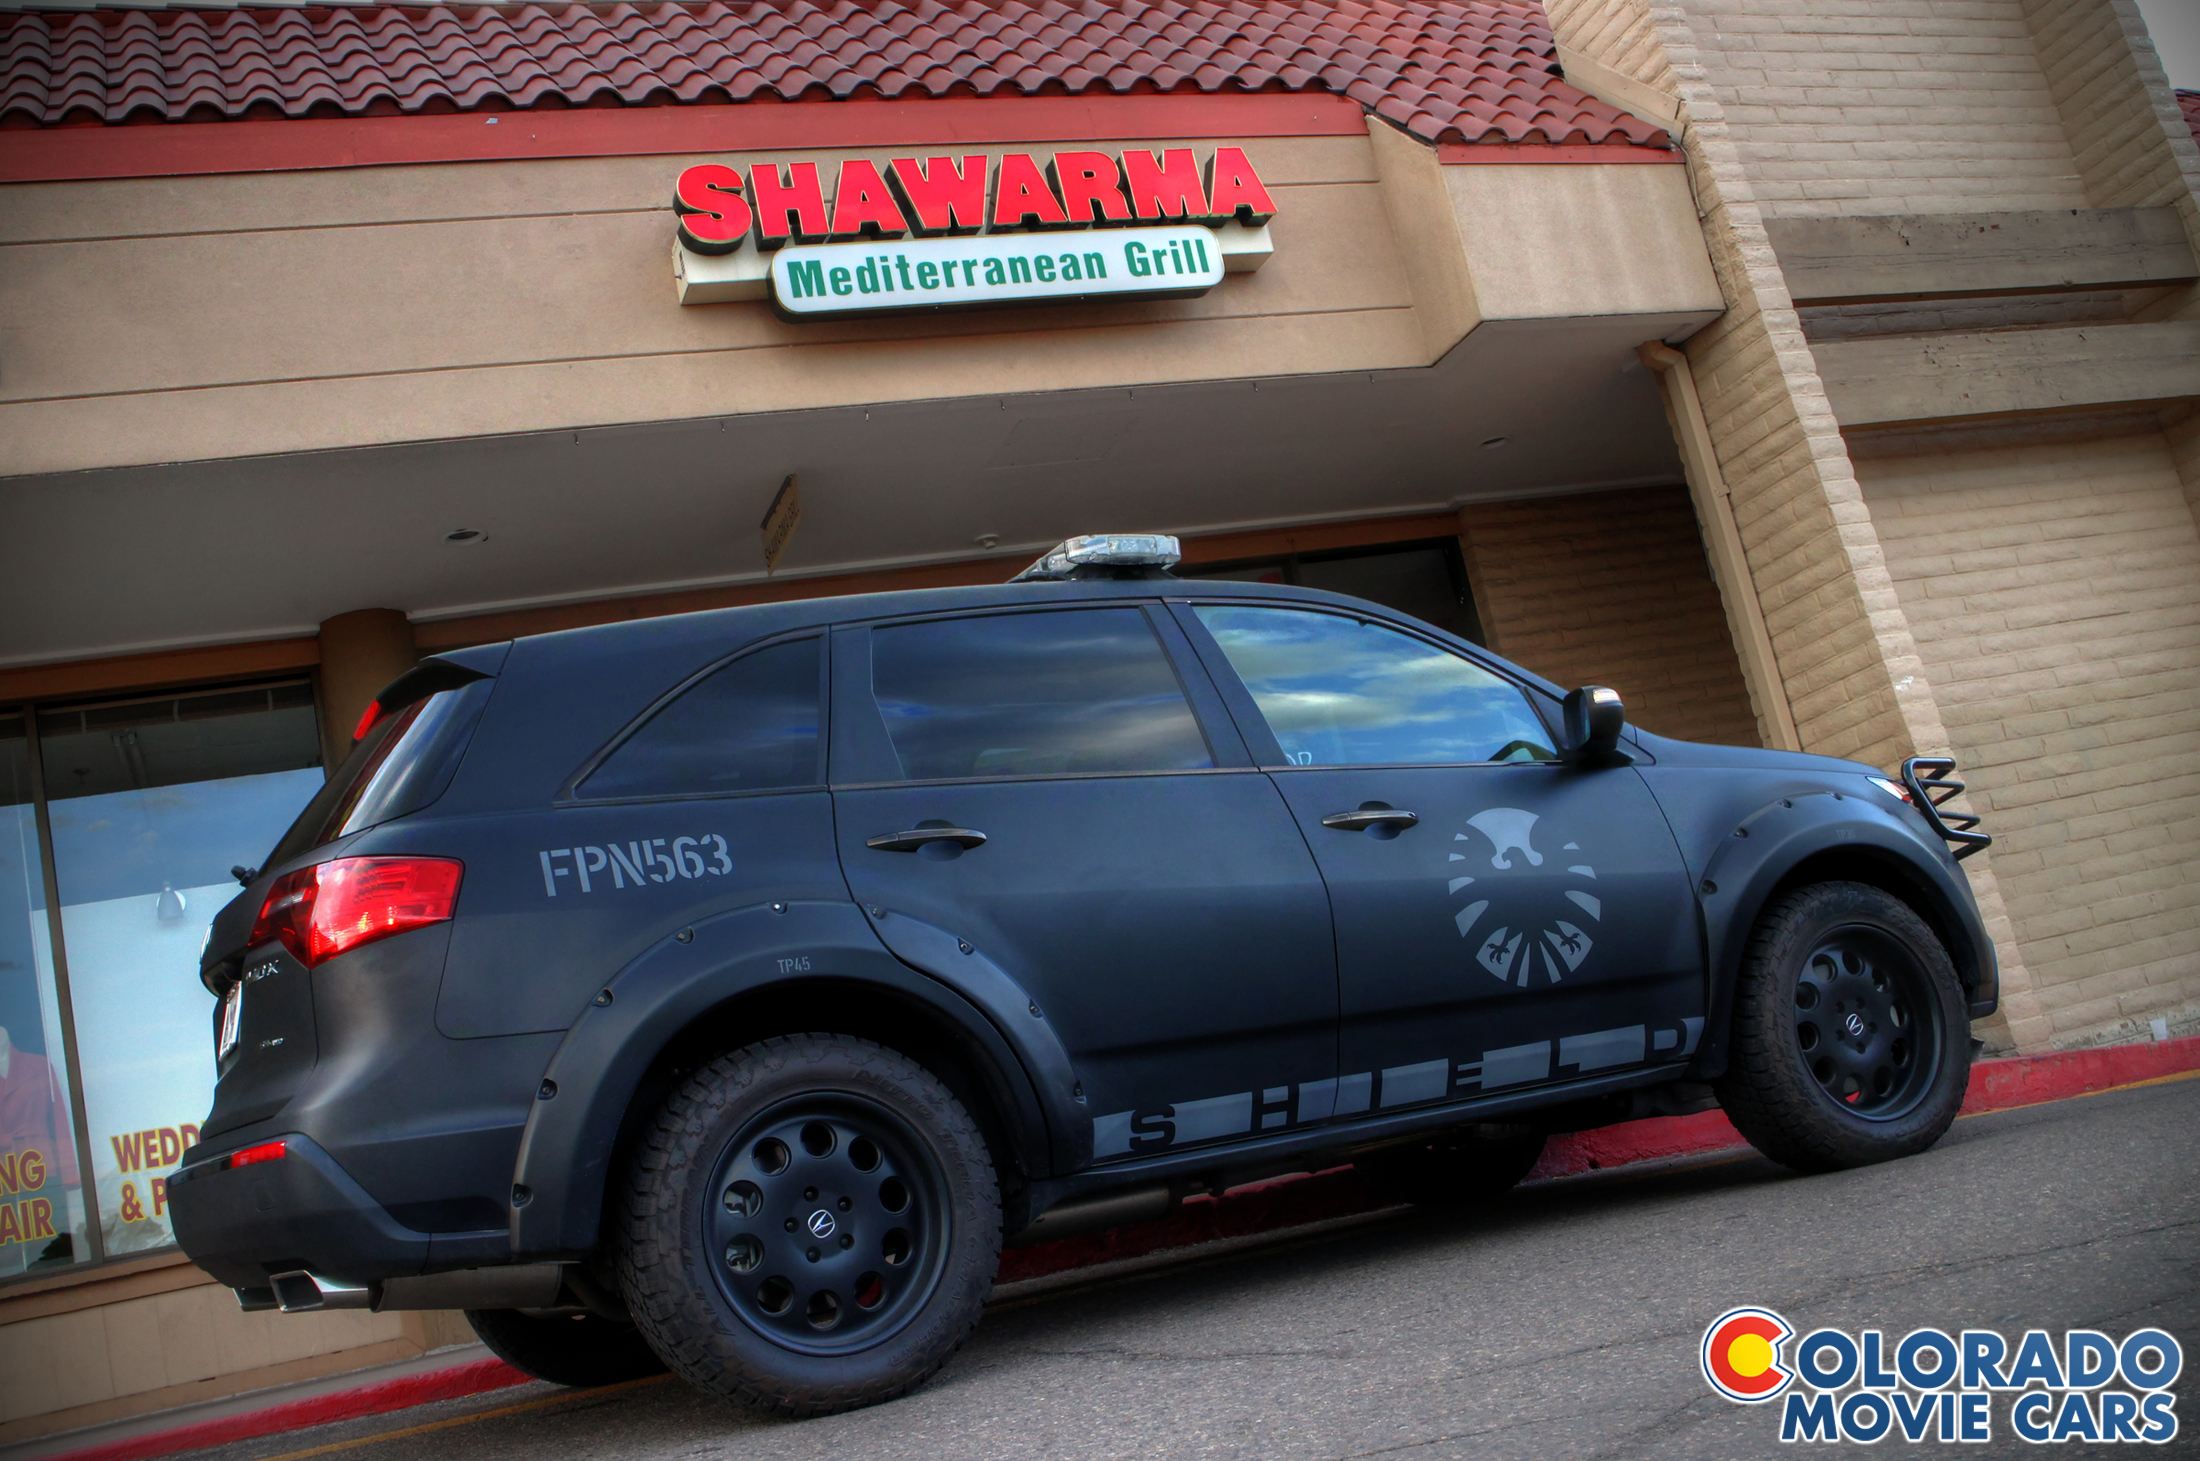 shawarma___colorado_movie_cars_shield_acrua_by_boomerjinks-d7flyzu.jpg